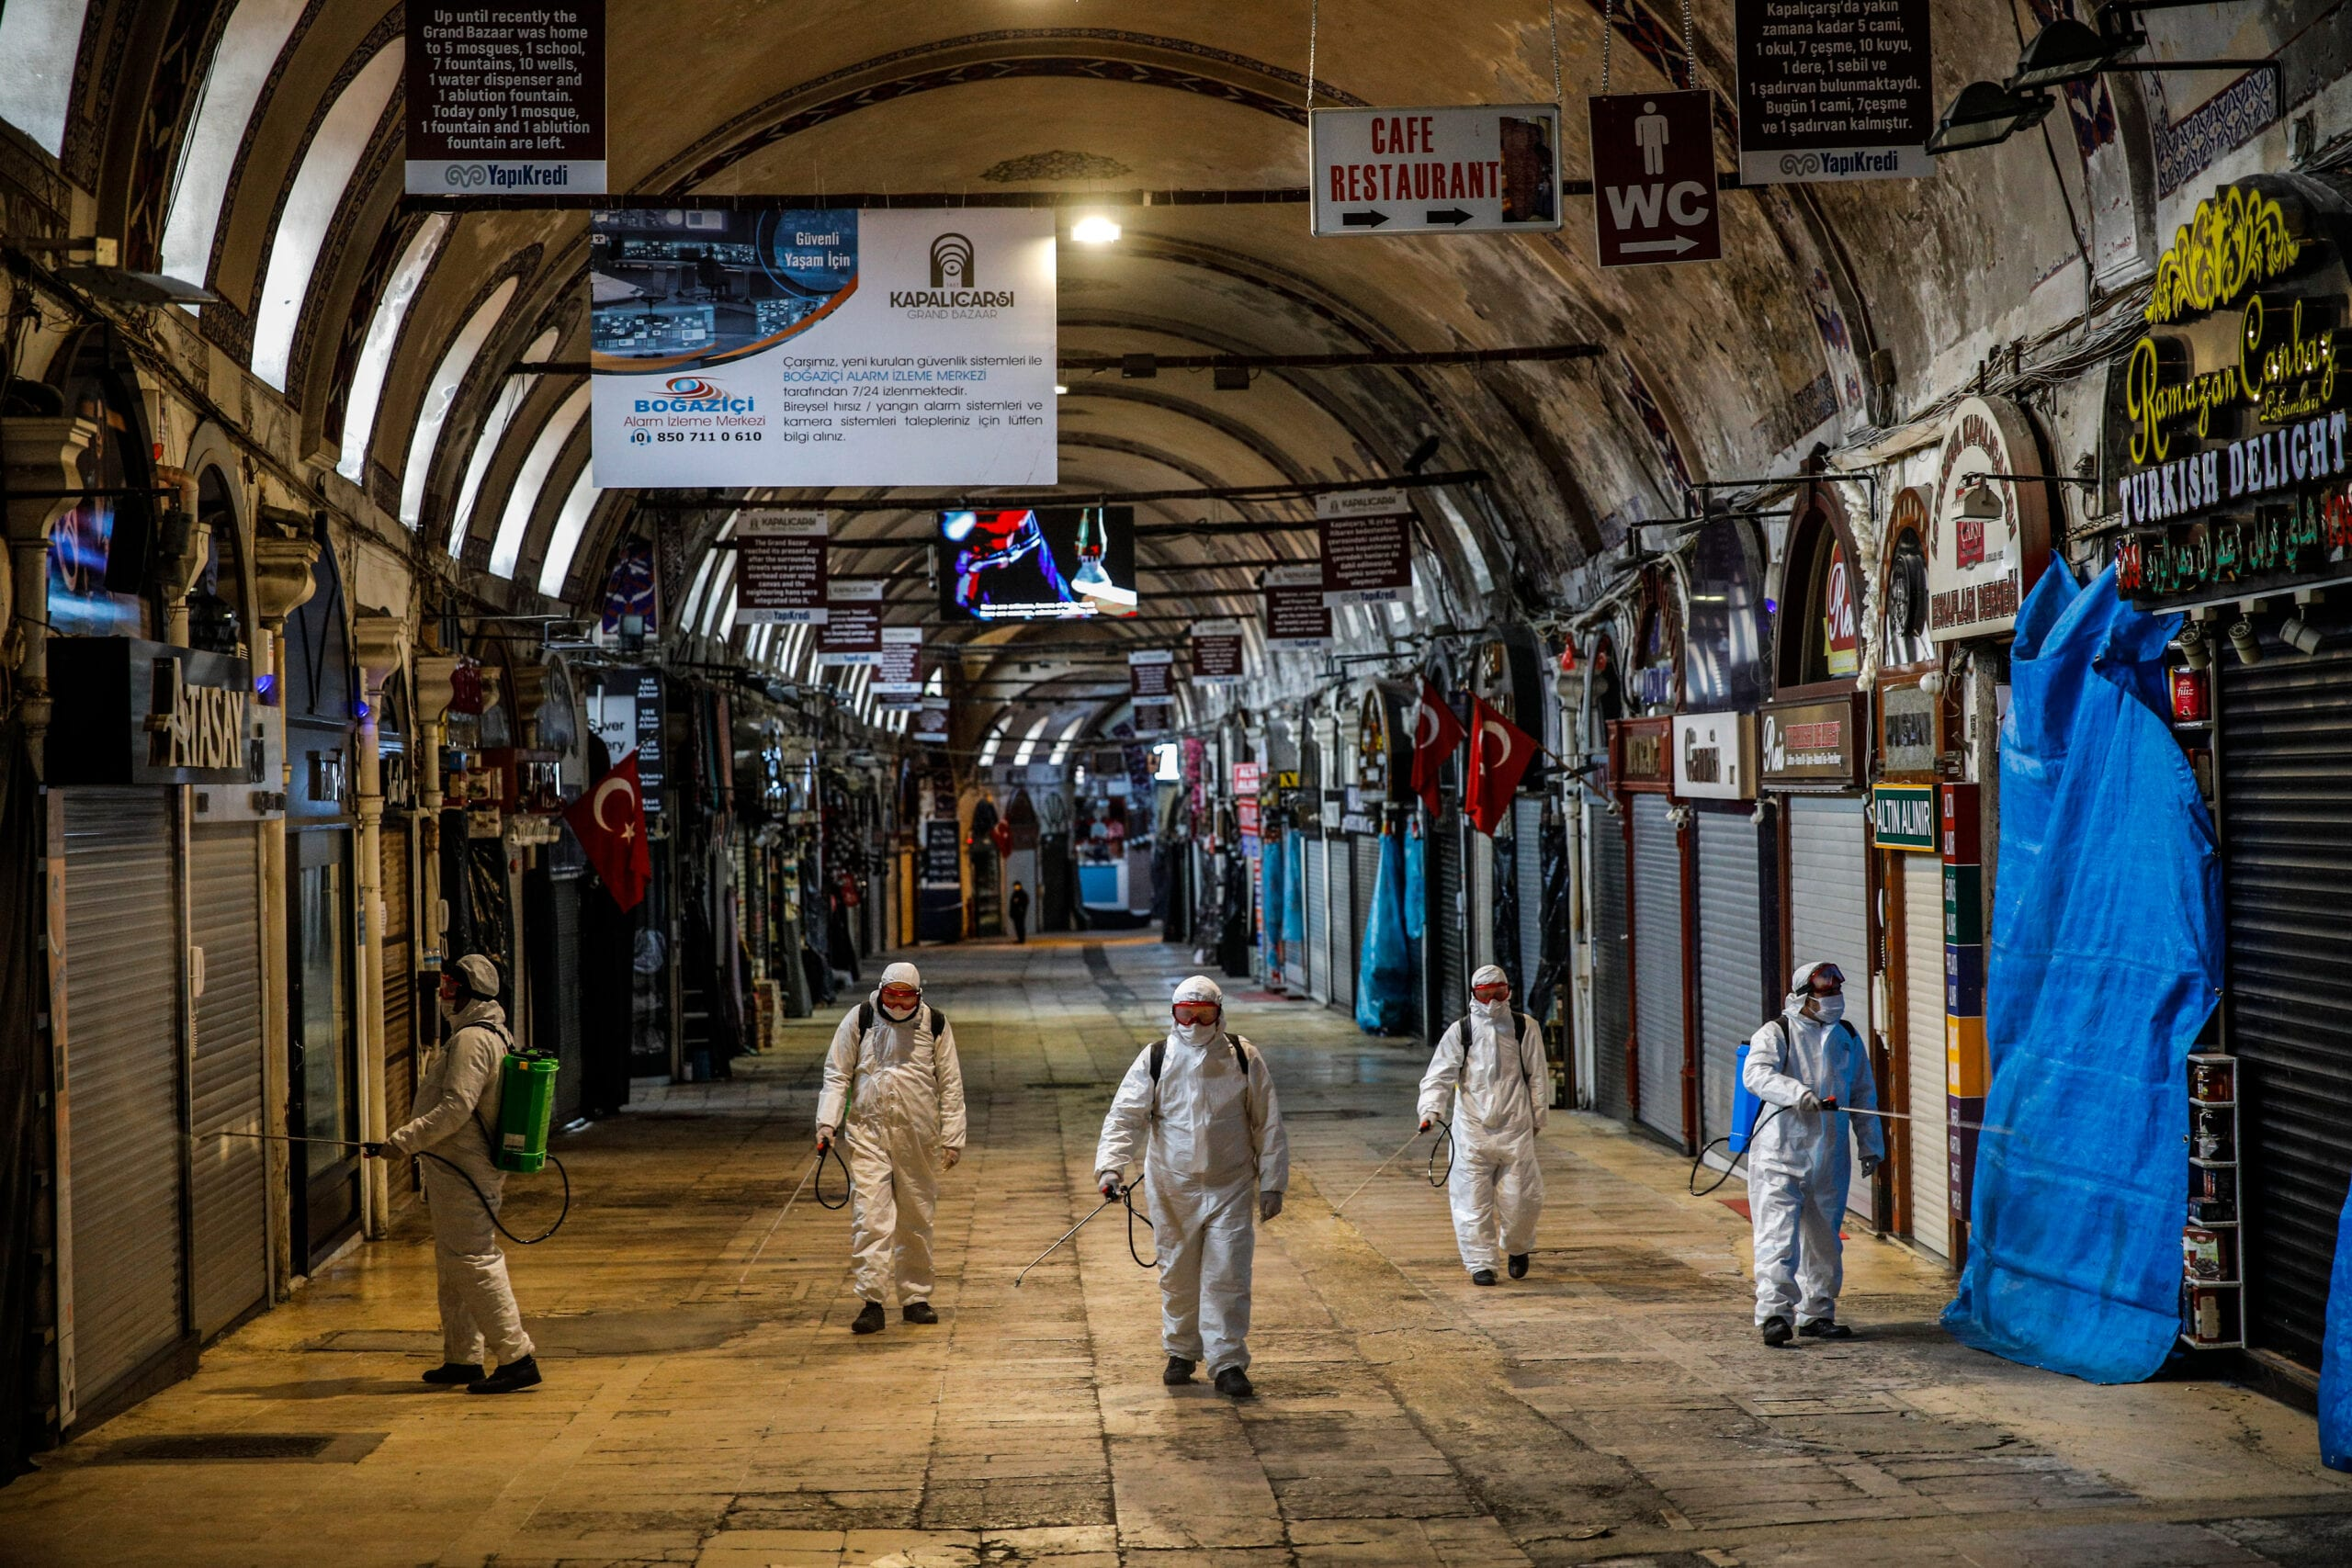 Workers spraying disinfectant to prevent the spread of Covid-19 in Istanbul, Turkey last year (Photo: Shutterstock)